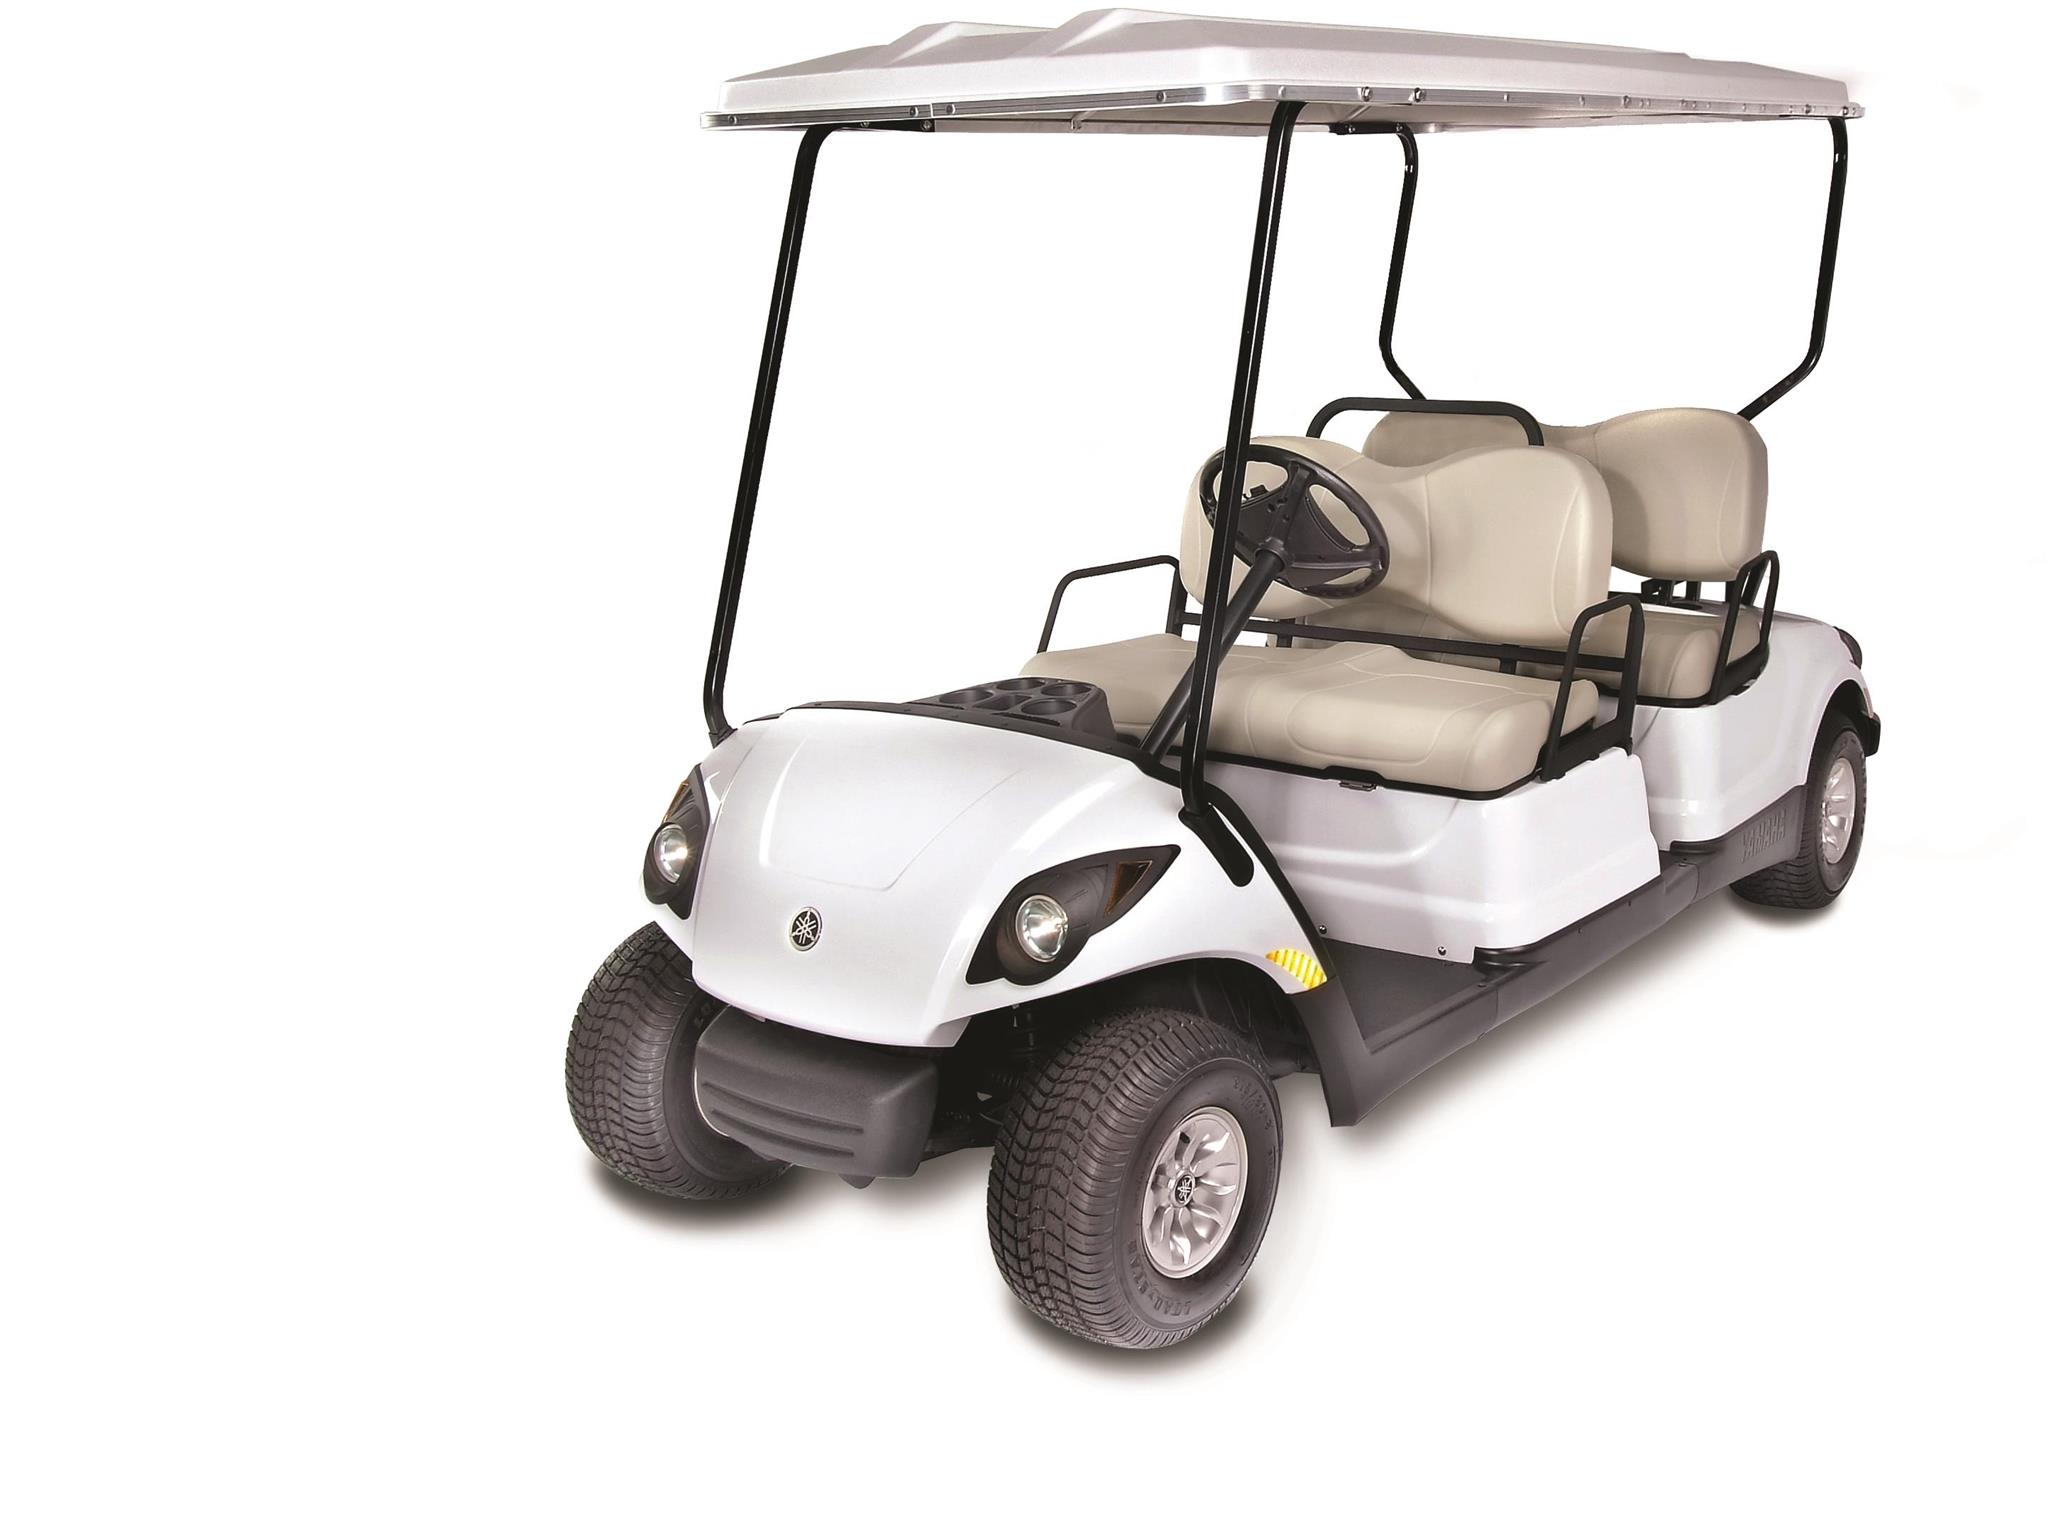 New England Golf Cars on used gas powered golf carts, old yamaha golf carts, flatbed golf carts, s s carts, enclosed golf carts, yamaha electric carts,